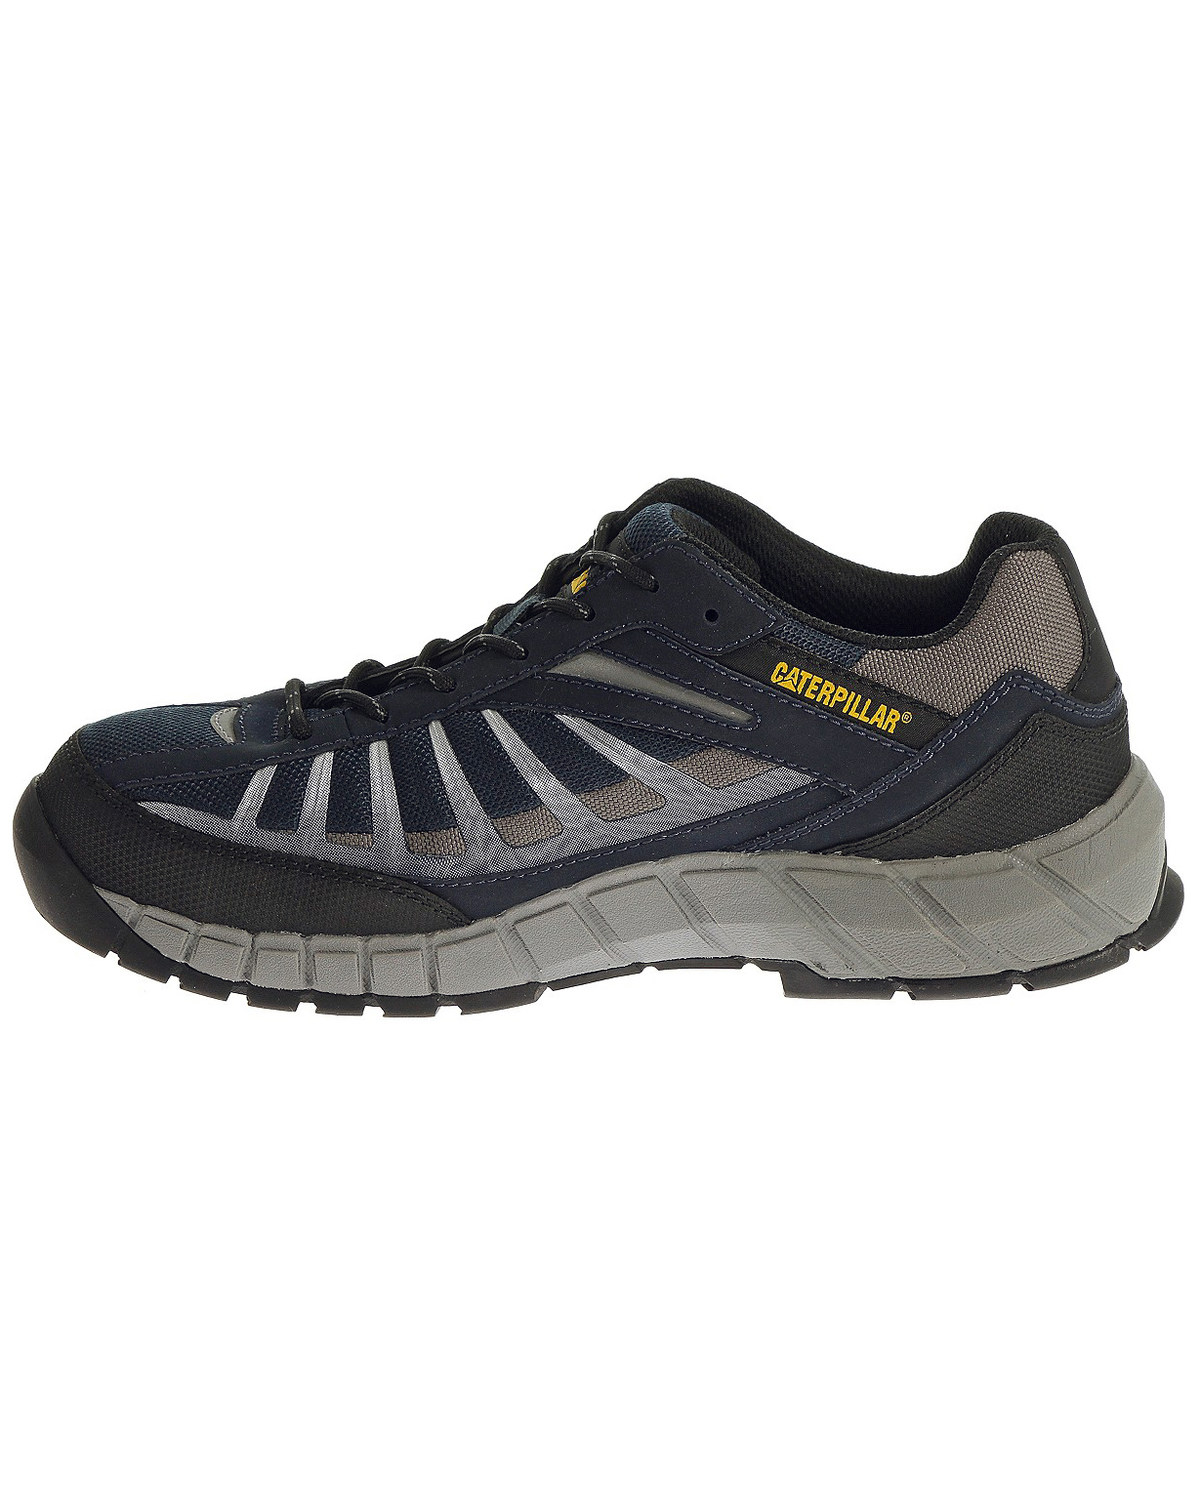 websites cheap price supply cheap price Men's Caterpillar Infrastructure Steel Toe Work Shoe free shipping wiki free shipping get authentic buy cheap cheap t2fITpfj